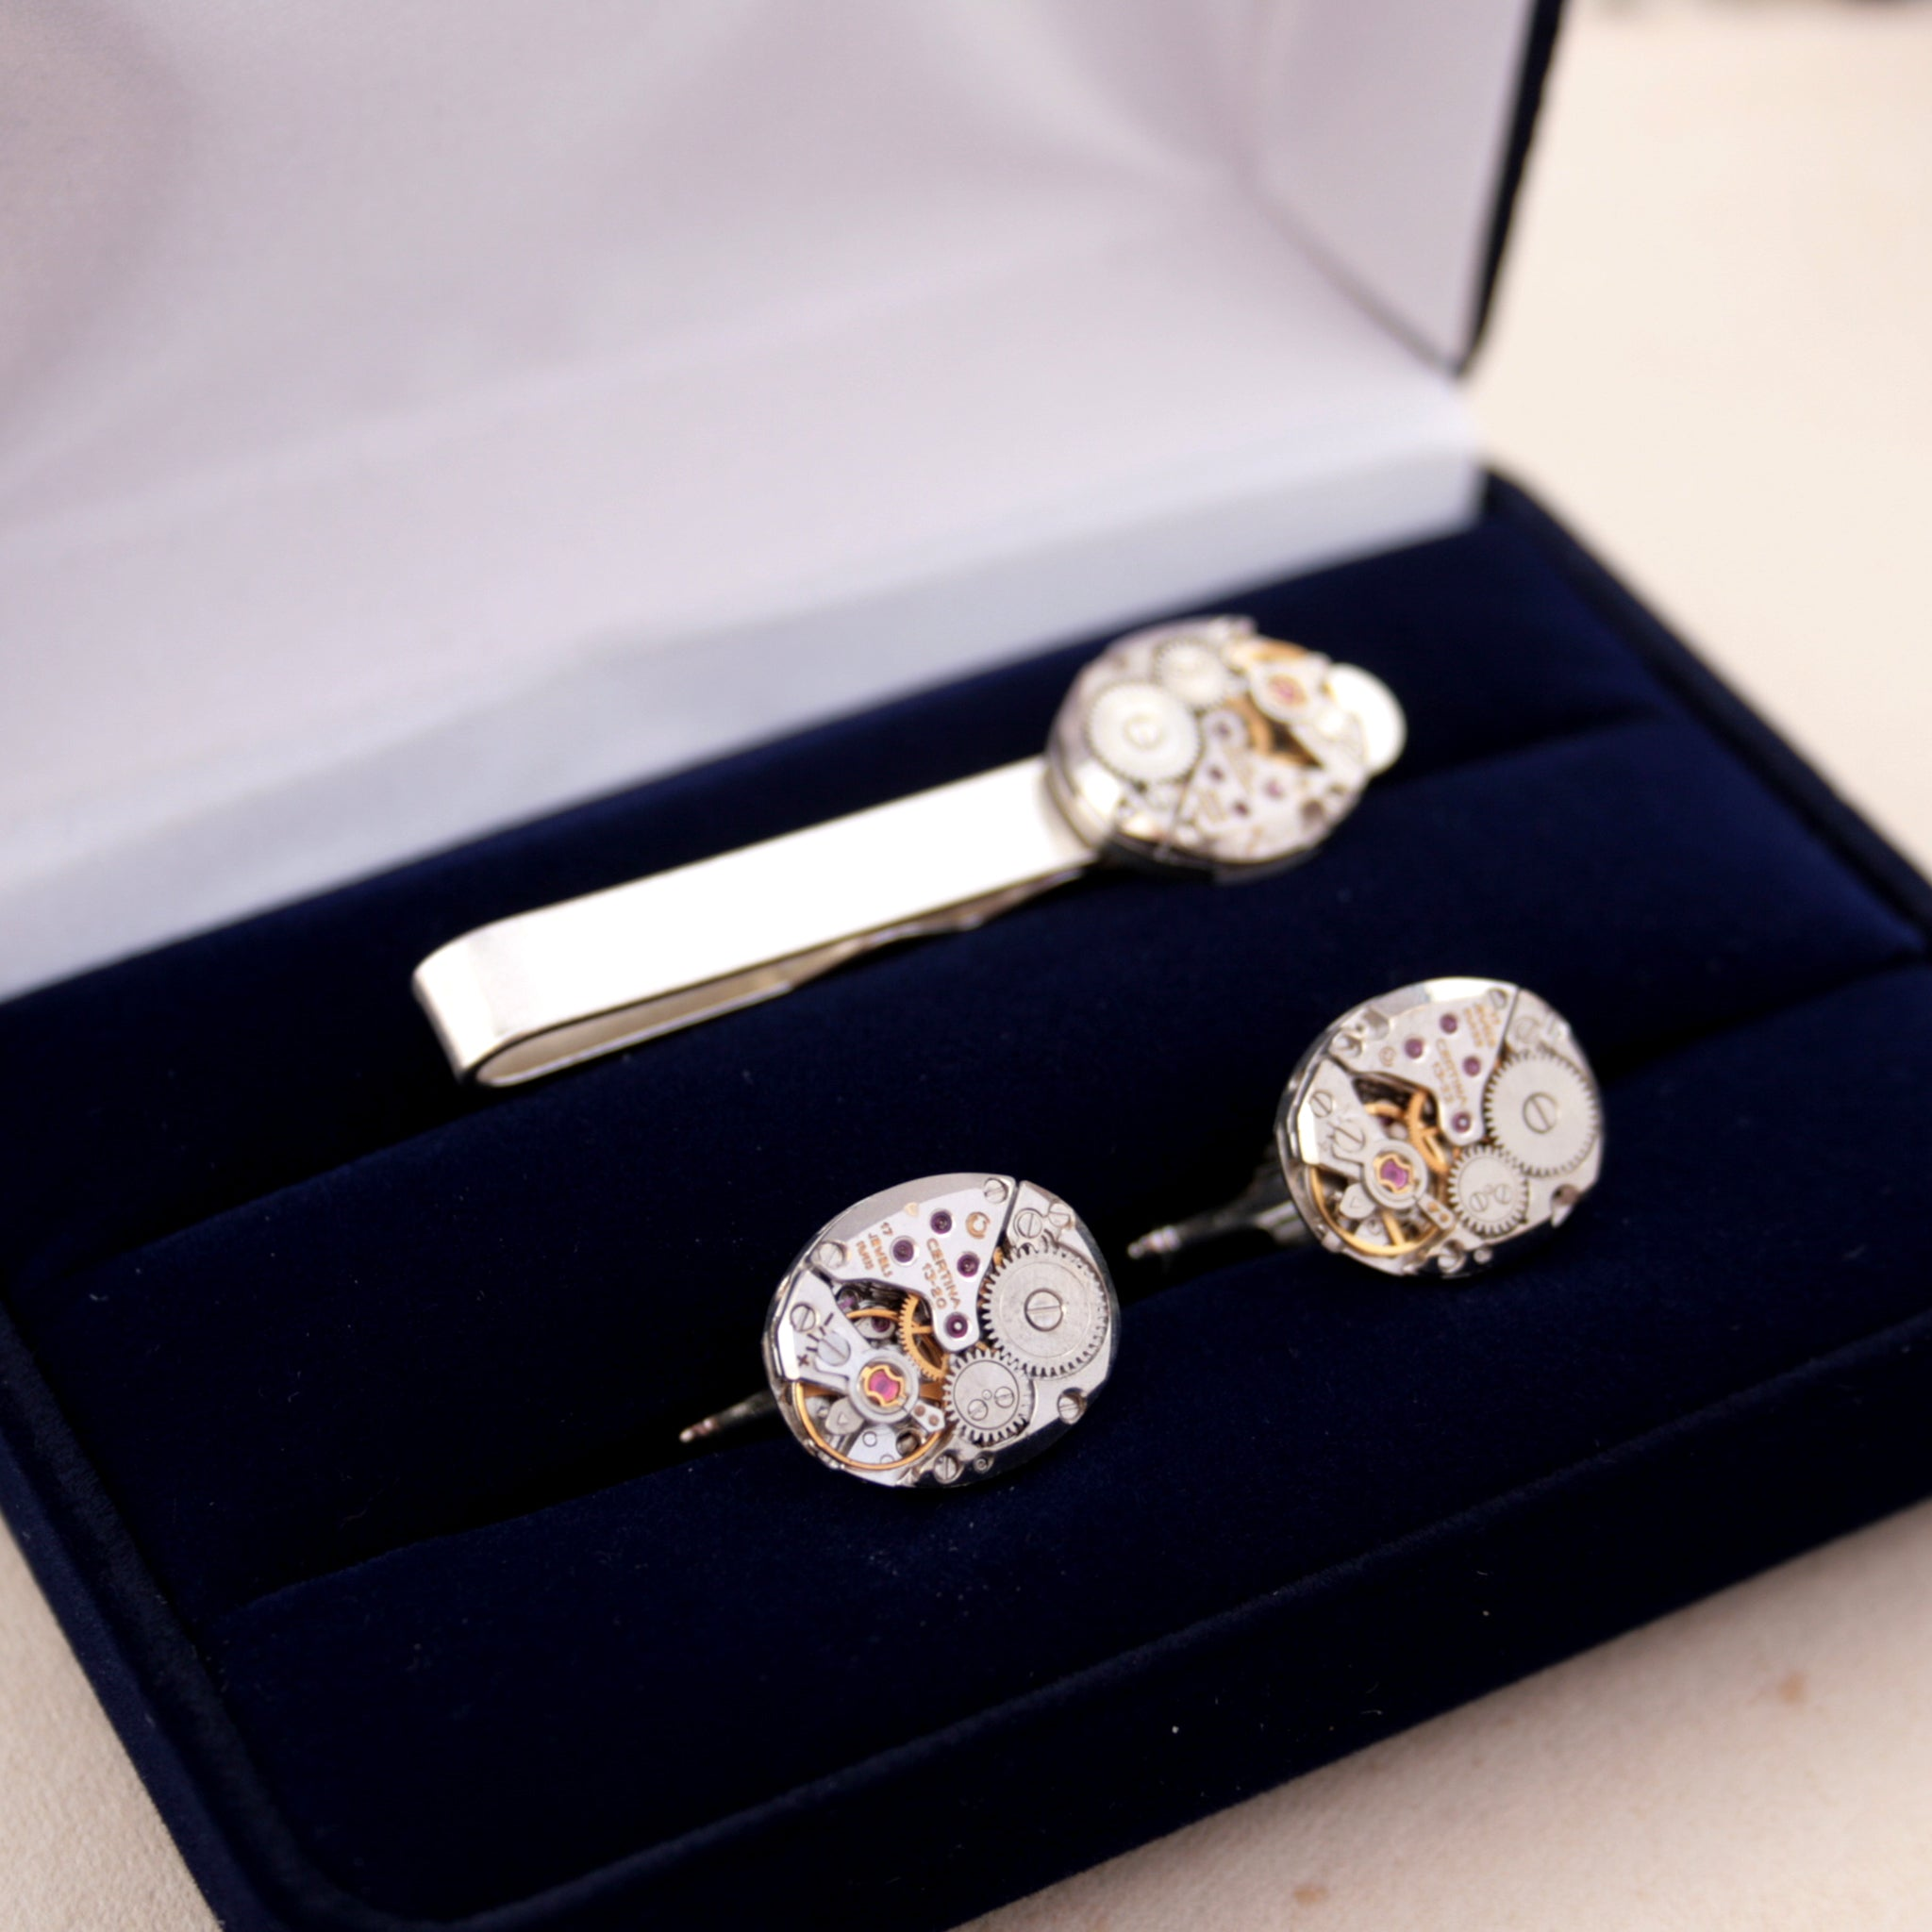 Sterling Cufflinks and Tie Clip Set in elegant velour box